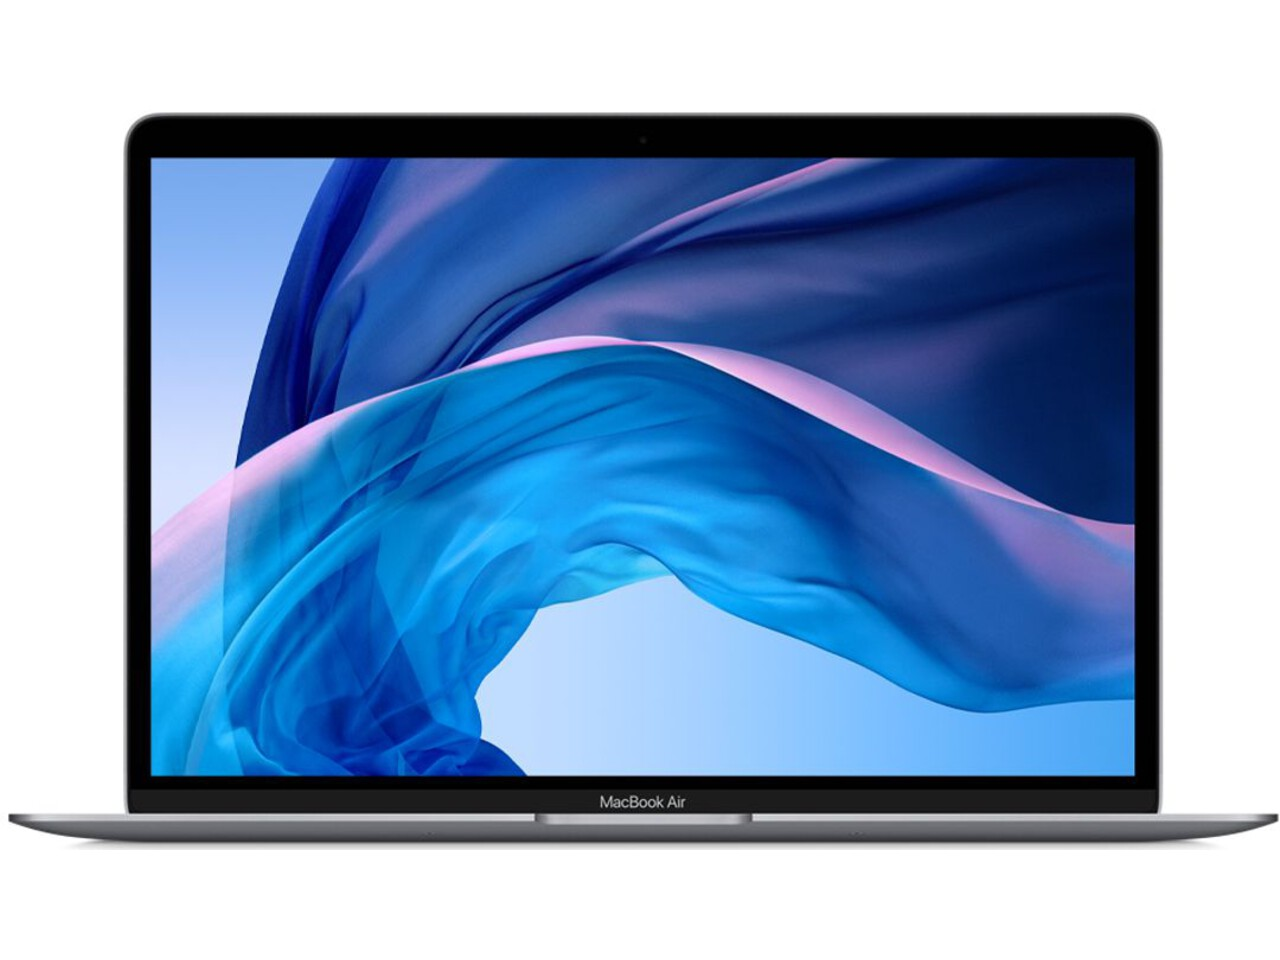 macbook air 13 inch 2020 space gray